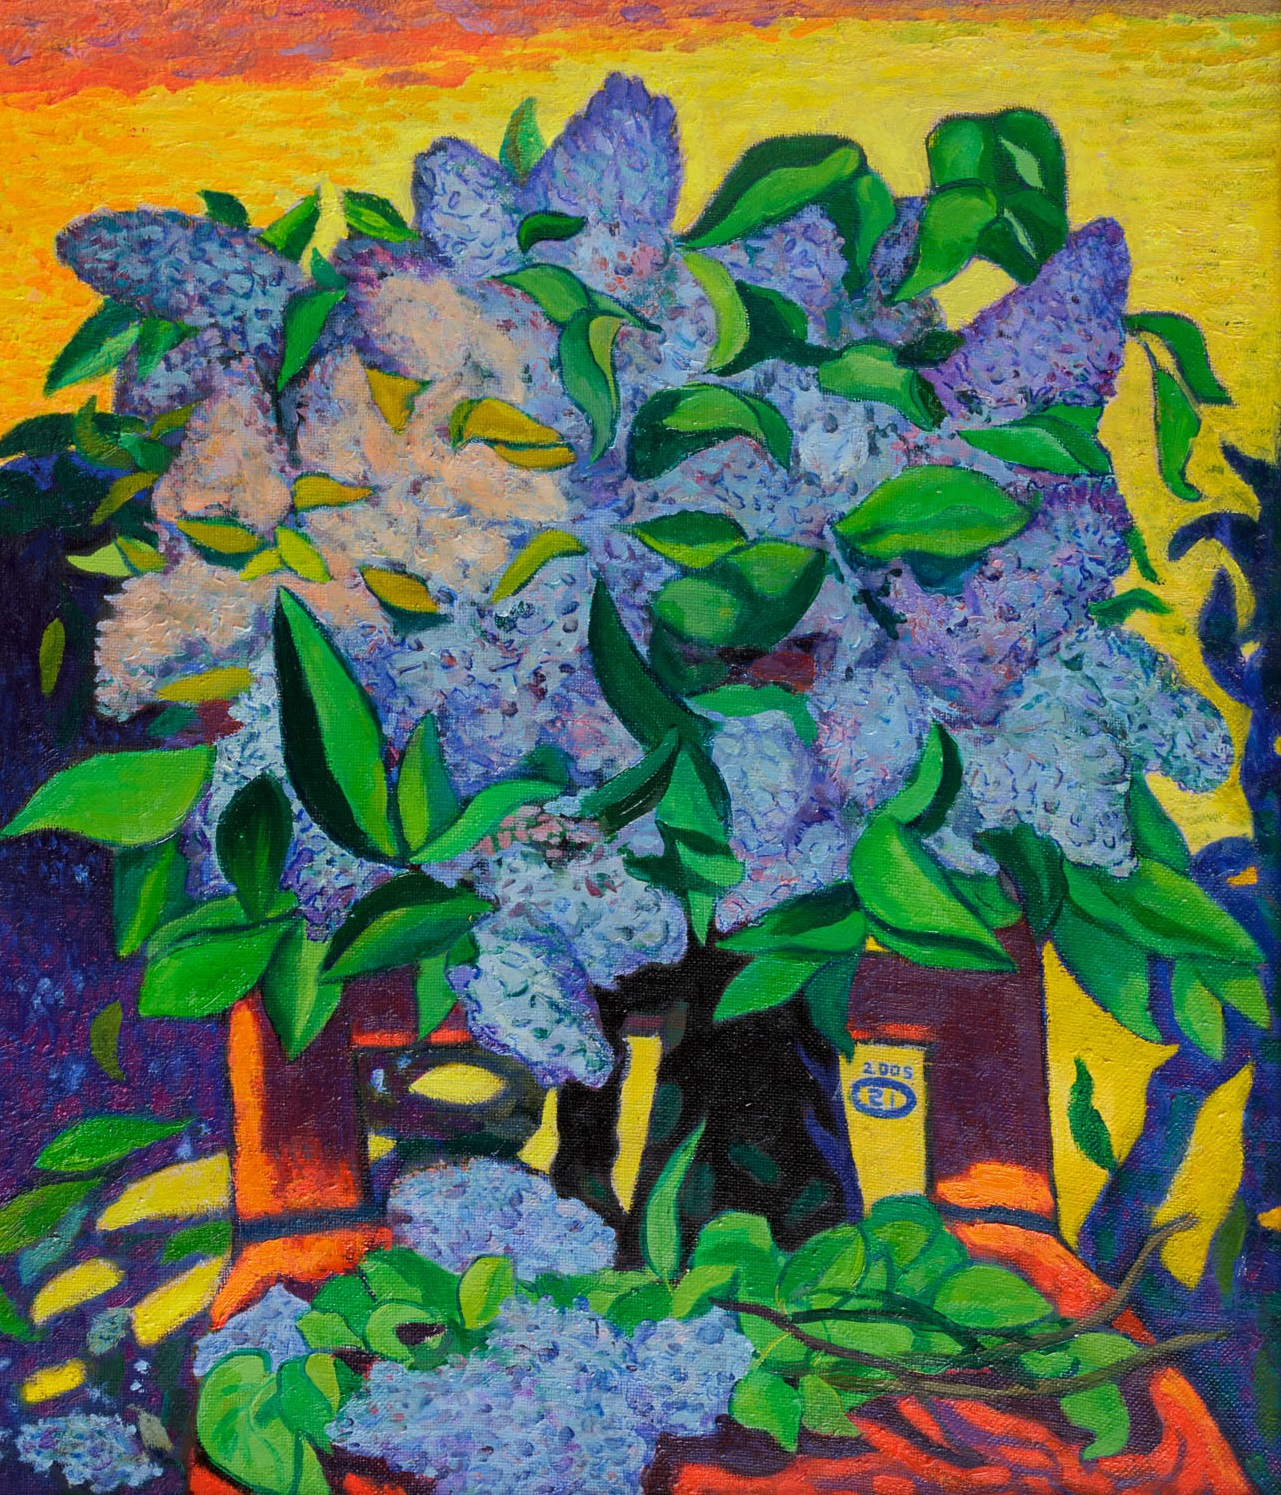 Moesey Li; Lilac, 2005, Original Painting Oil, 60 x 70 cm. Artwork description: 241 realism, still life, flowers, lilac...